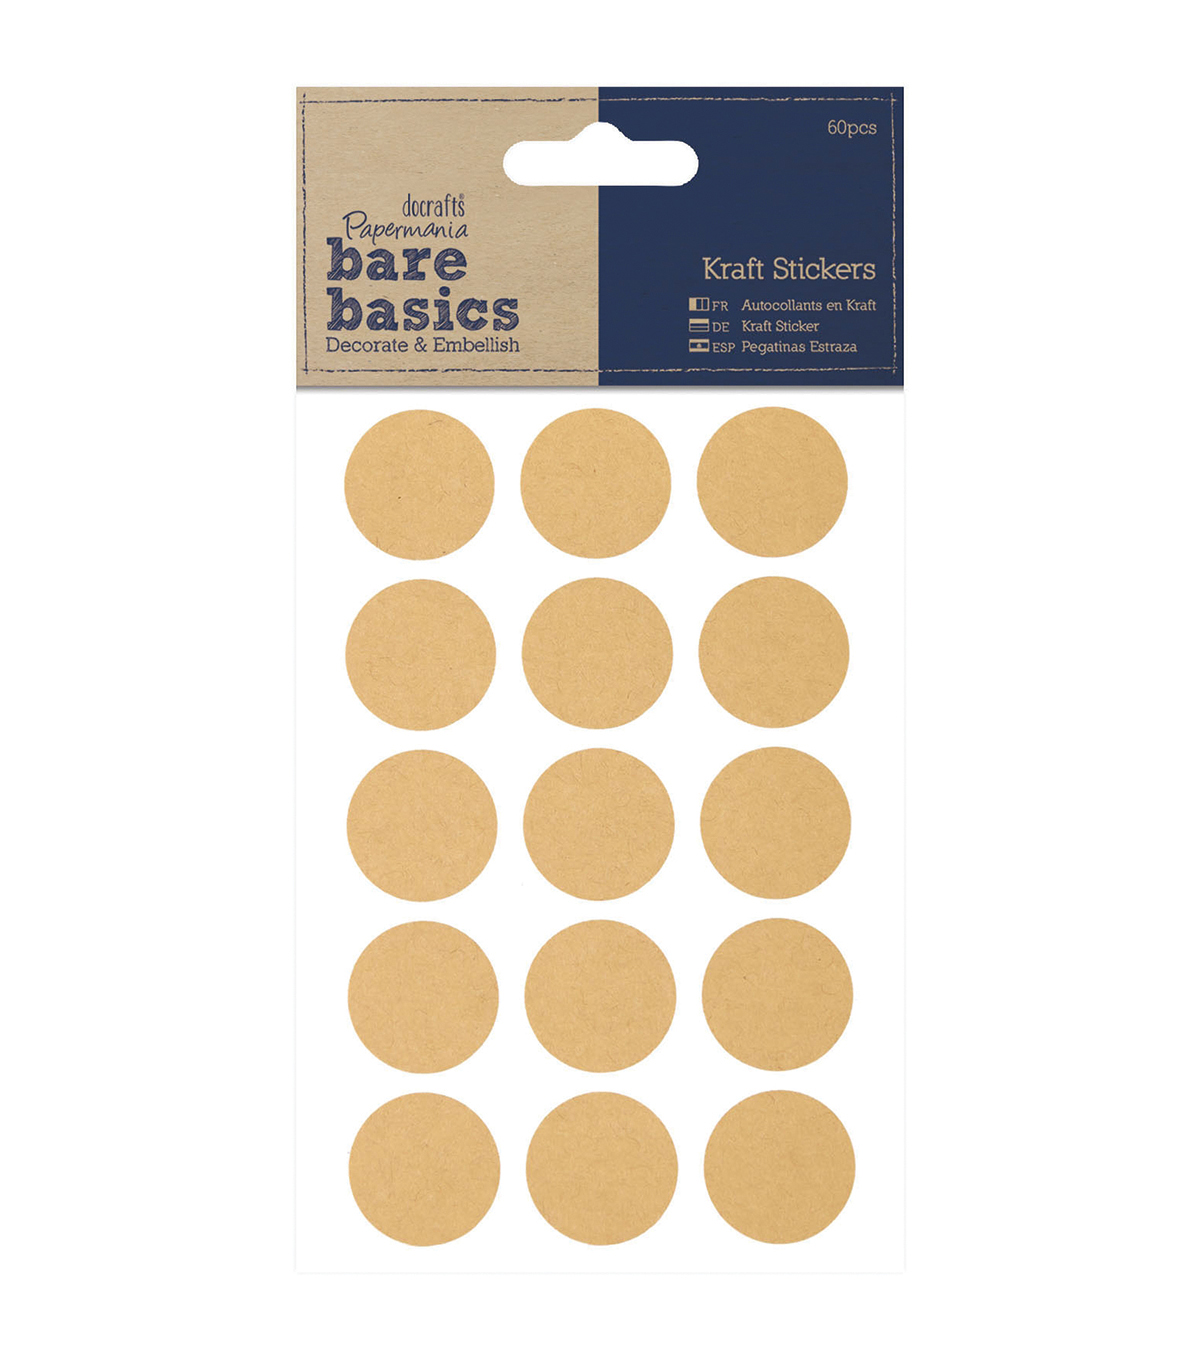 Papermania Bare Basics Circles Kraft Stickers